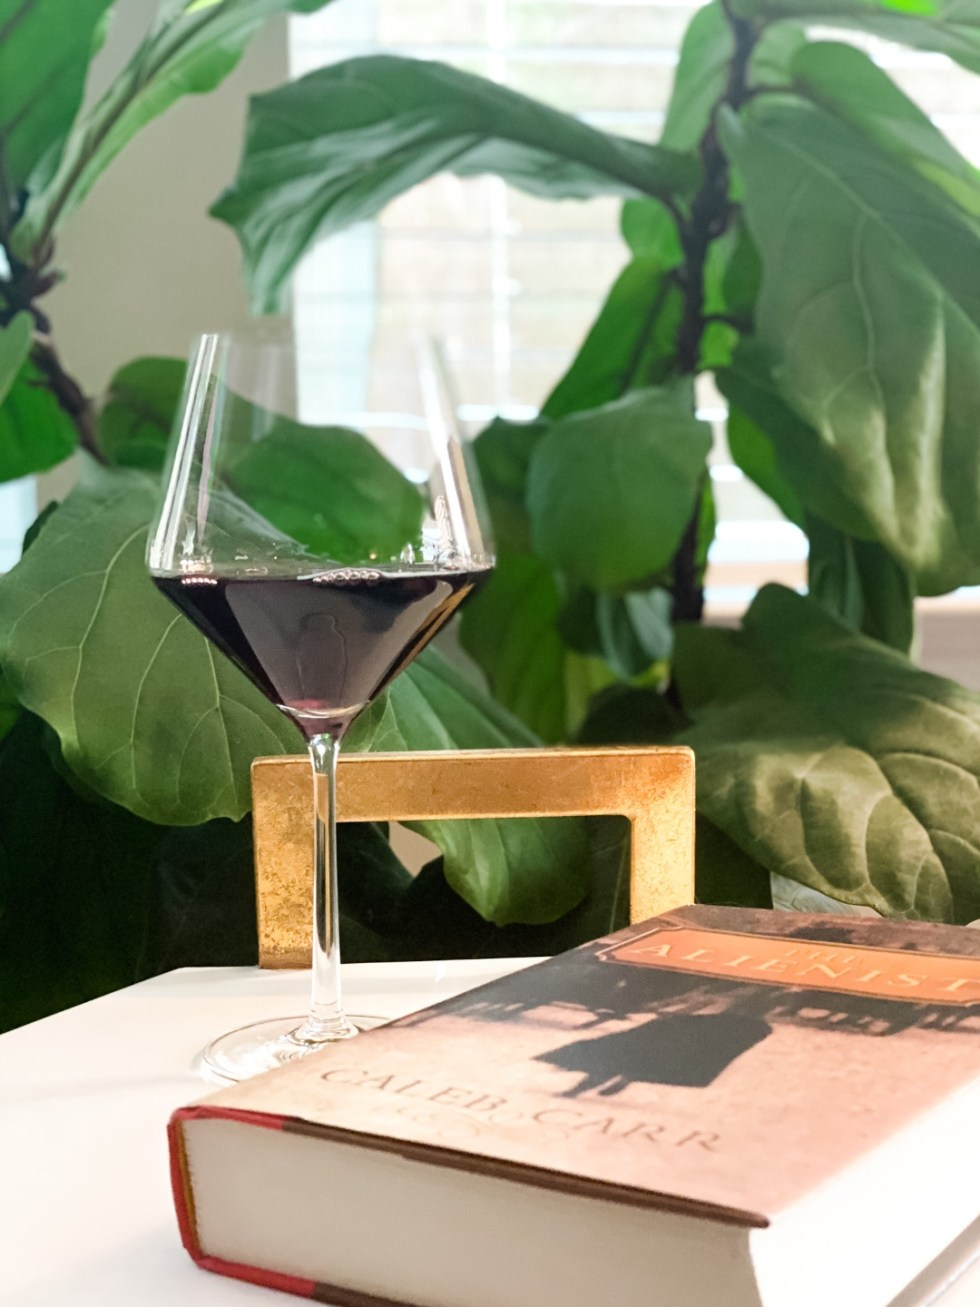 Top 5 Wine Glass Styles to Add to your Collection - I'm Fixin' To - @mbg0112 | Wine Glass Styles by popular N.C. life and style blog, I'm Fixin' To: image of a Schott Zwiesel Burgundy glass.